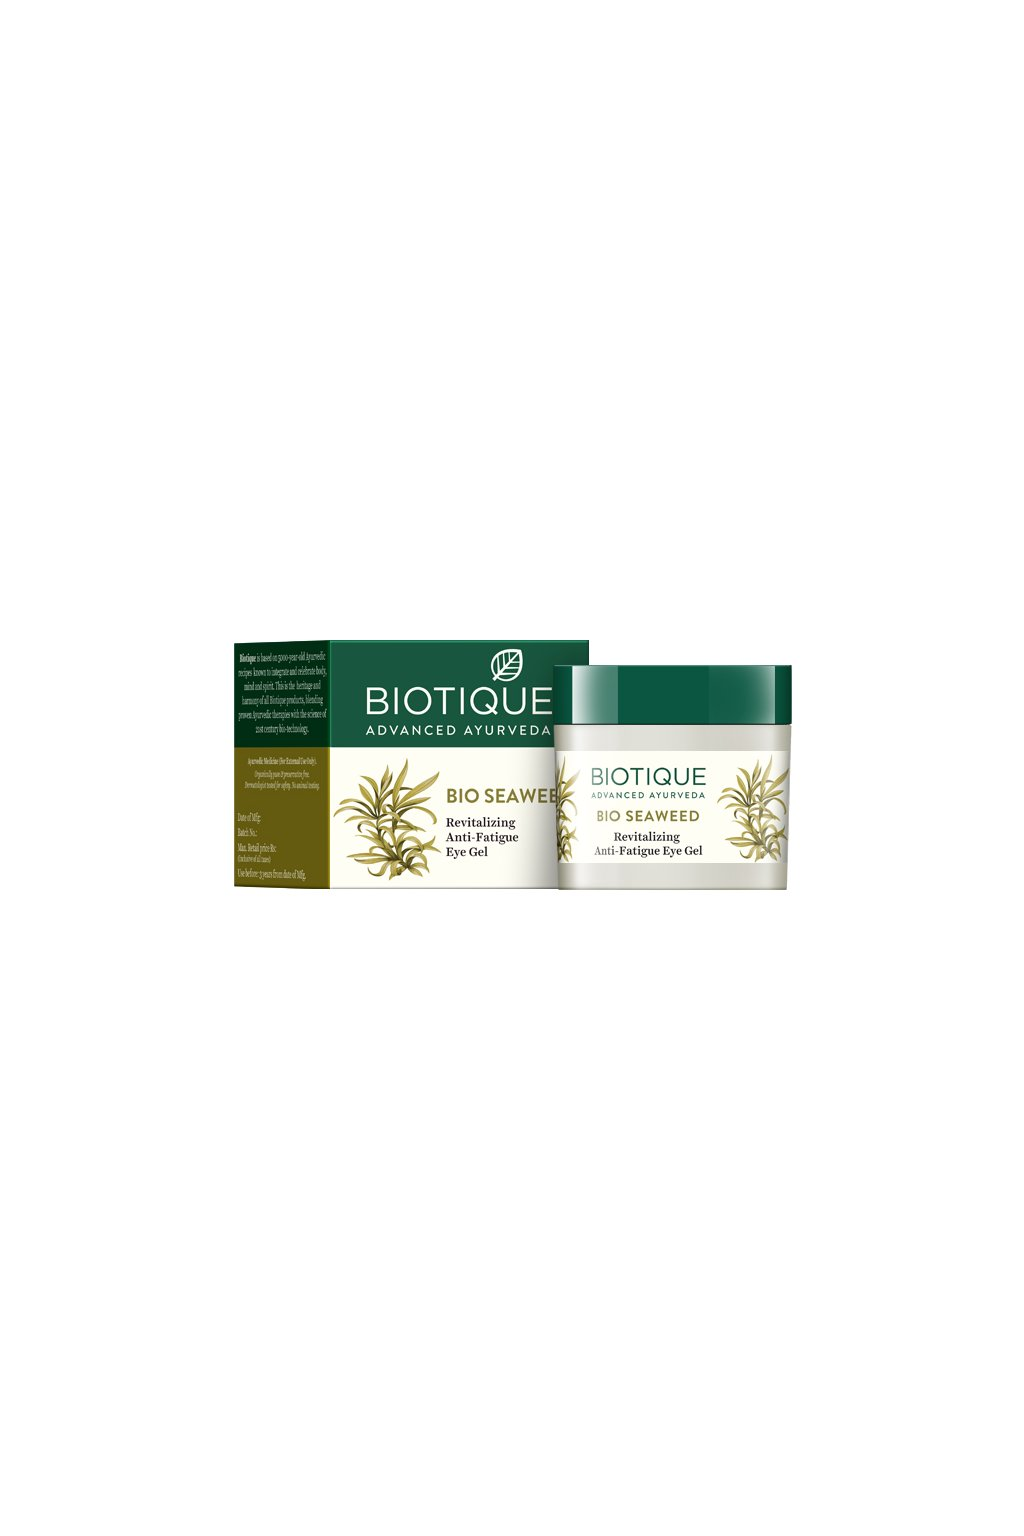 Bio seaweed revitalizing anti fatigue eye gel 1